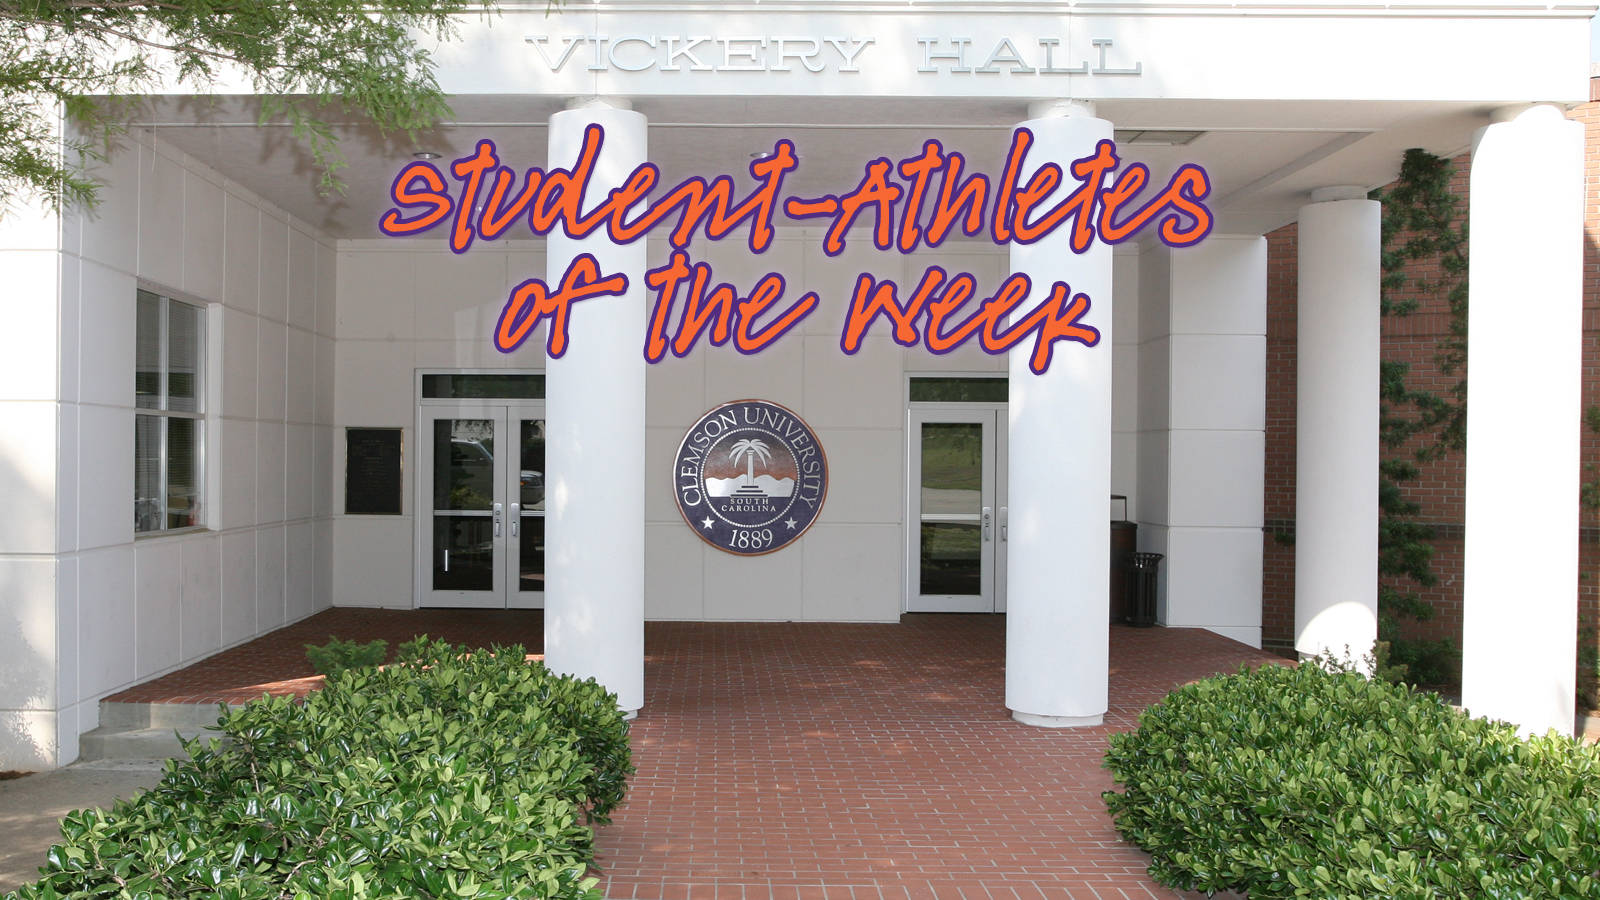 Vickery Hall's Student-Athletes of the Week: Sept. 30-Oct. 6